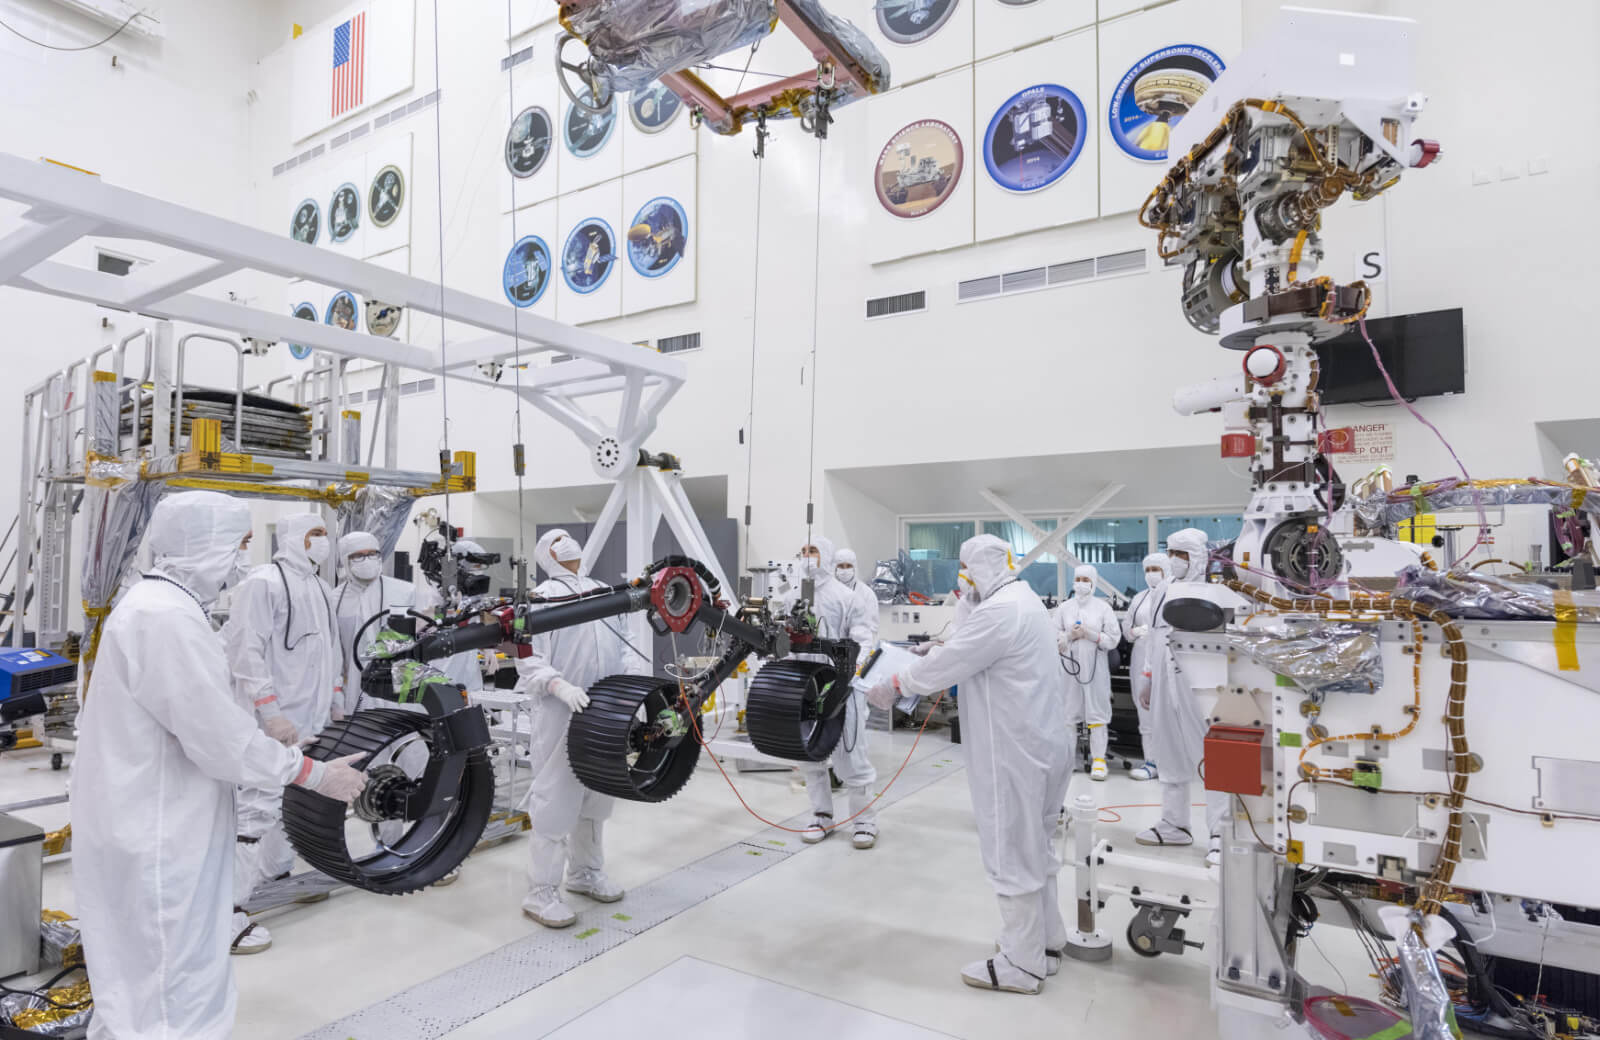 Raspberry Pi used to steal 500MB of mission data from NASA lab